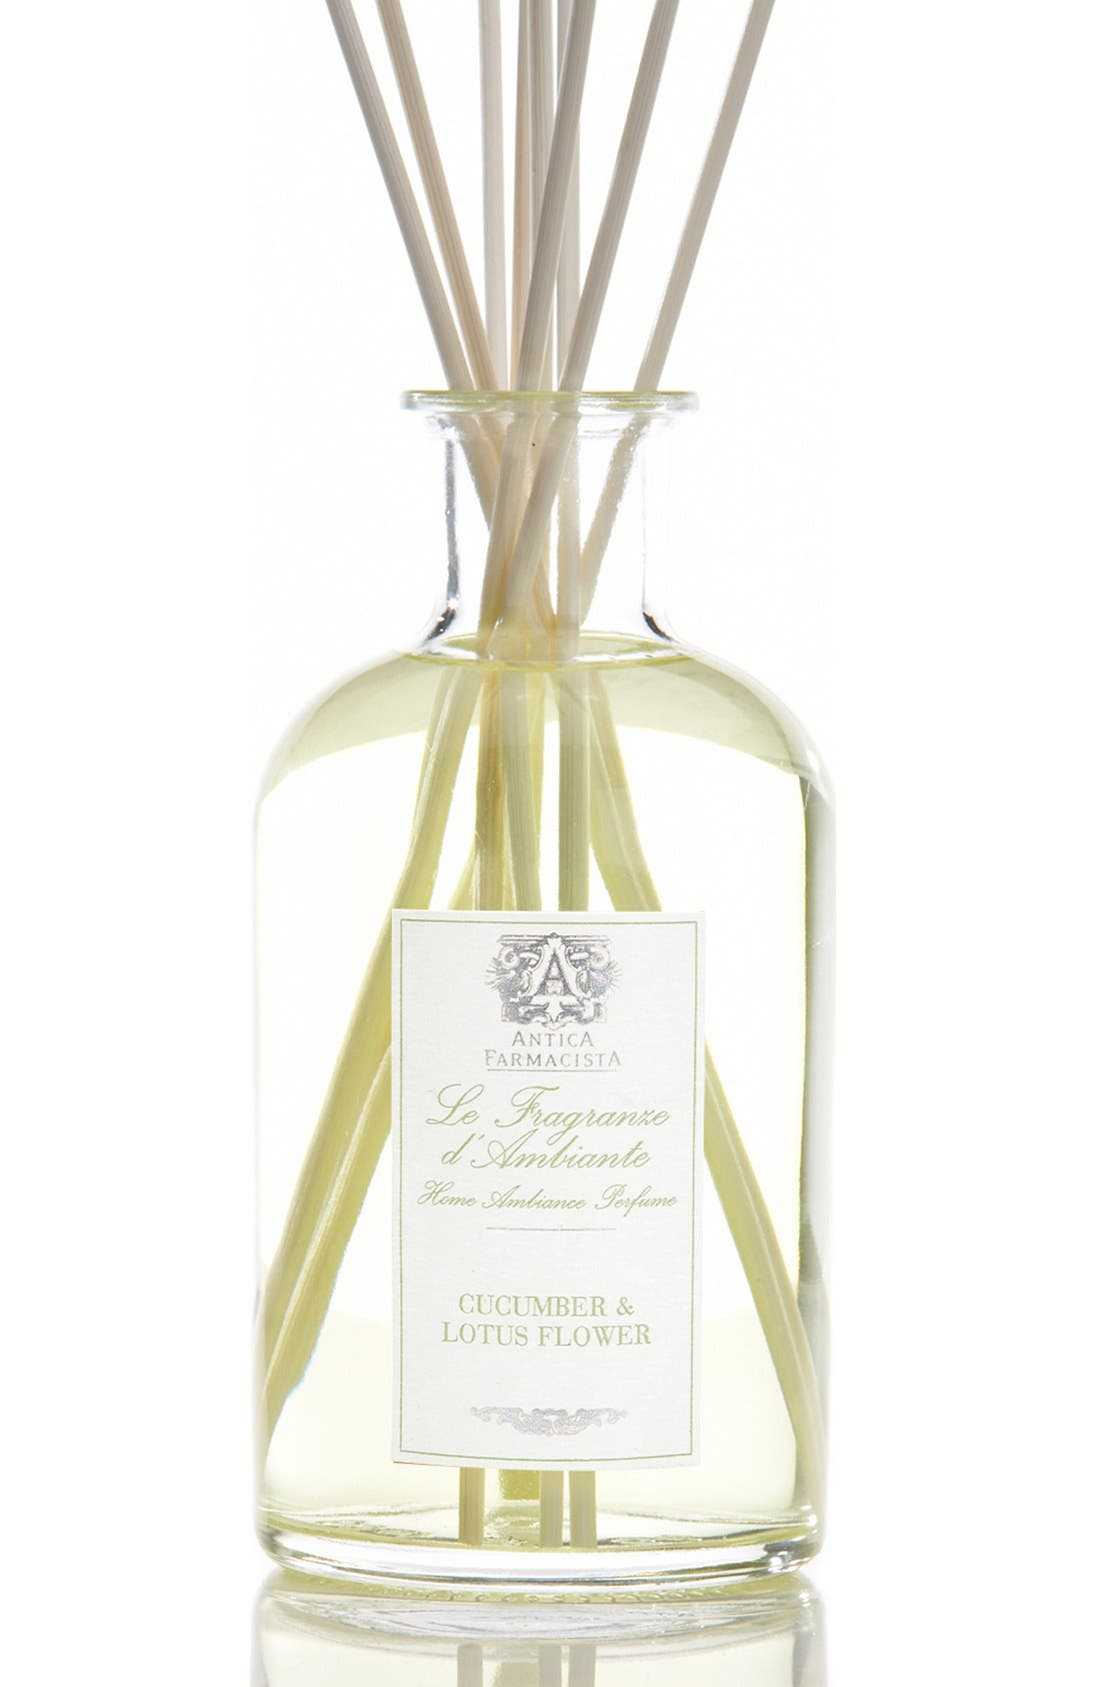 Cucumber & Lotus Flower Home Ambiance Perfume,                             Alternate thumbnail 2, color,                             NO COLOR